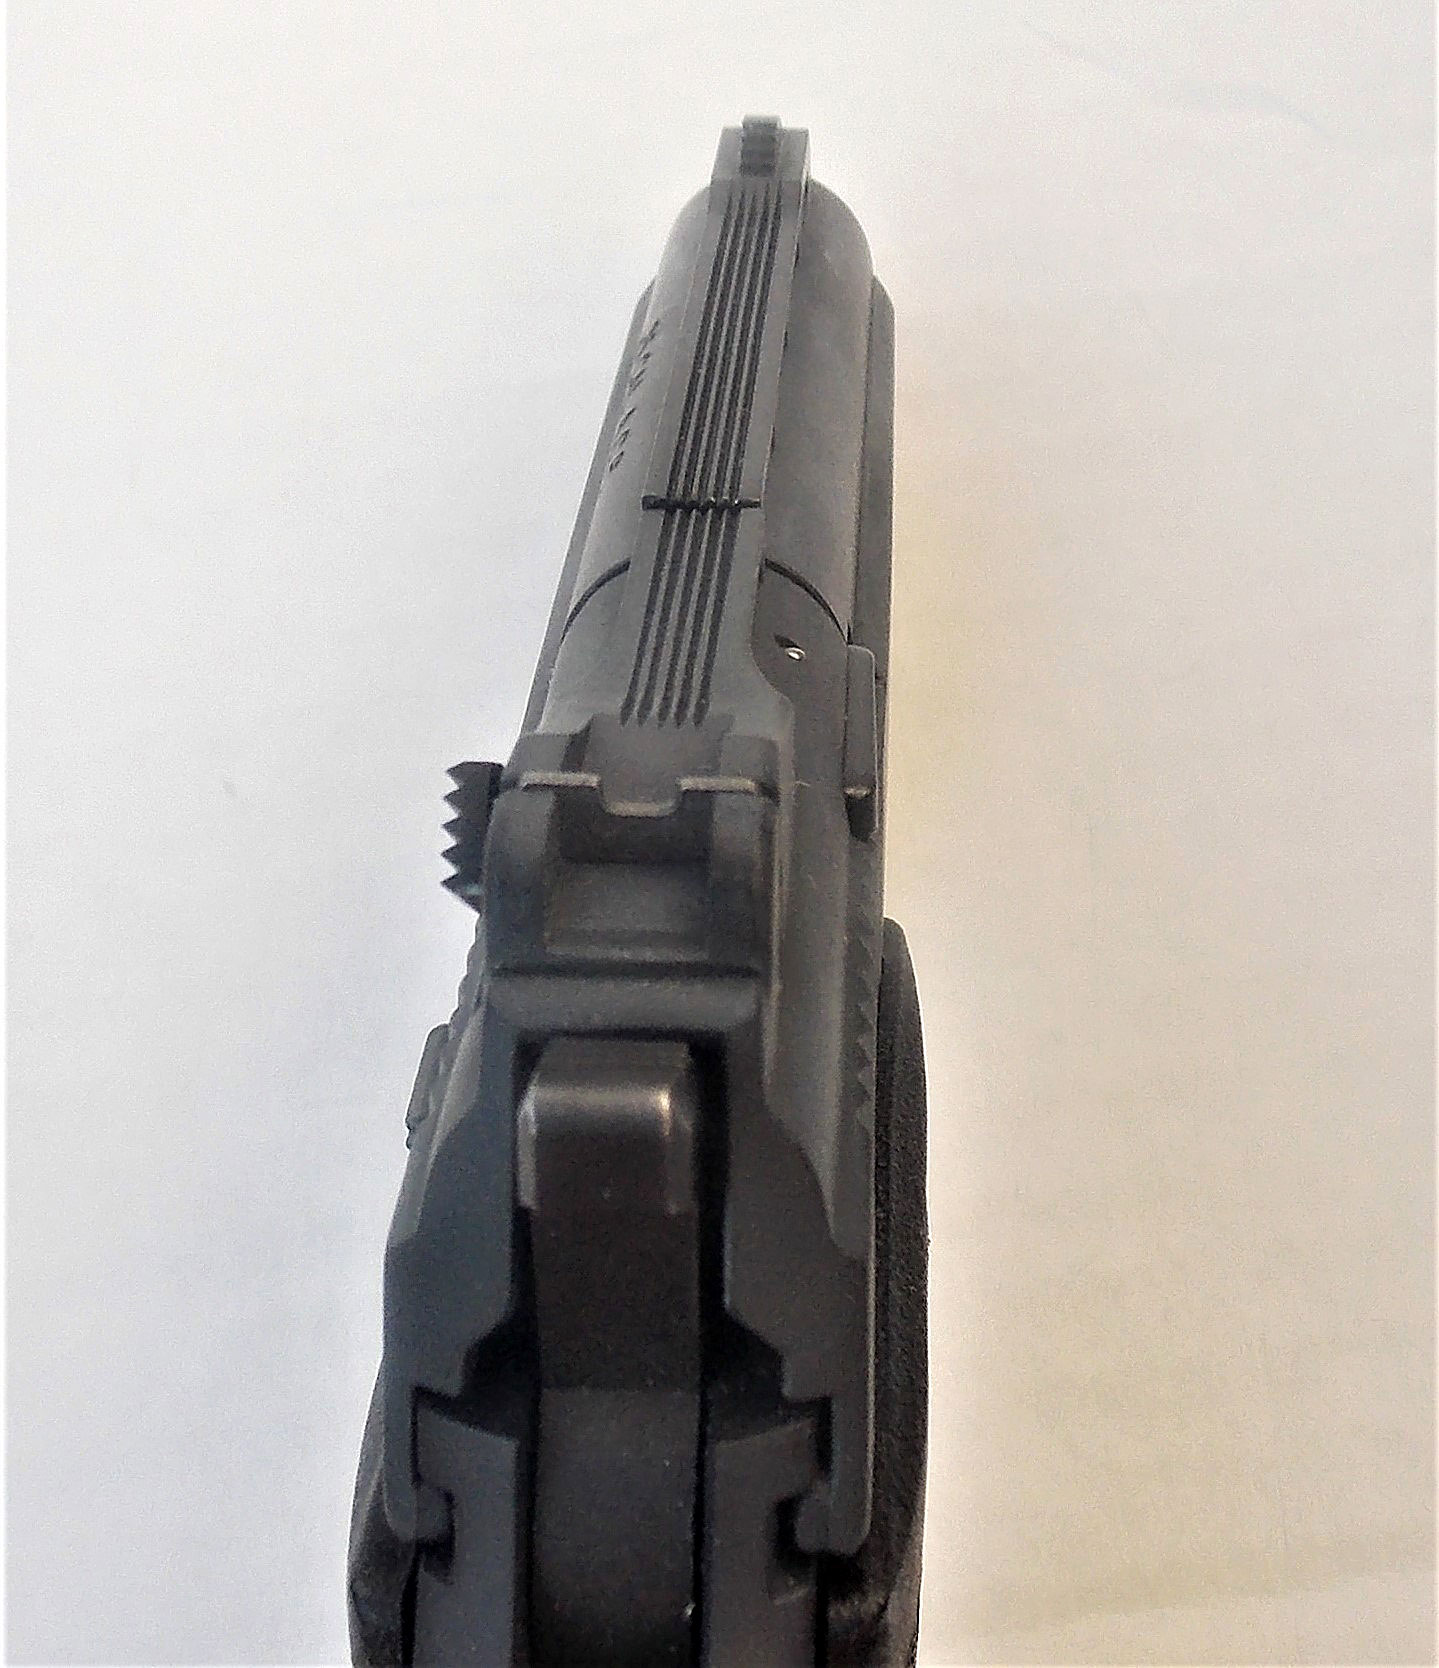 The pistols sights are well above average for a pocket gun.